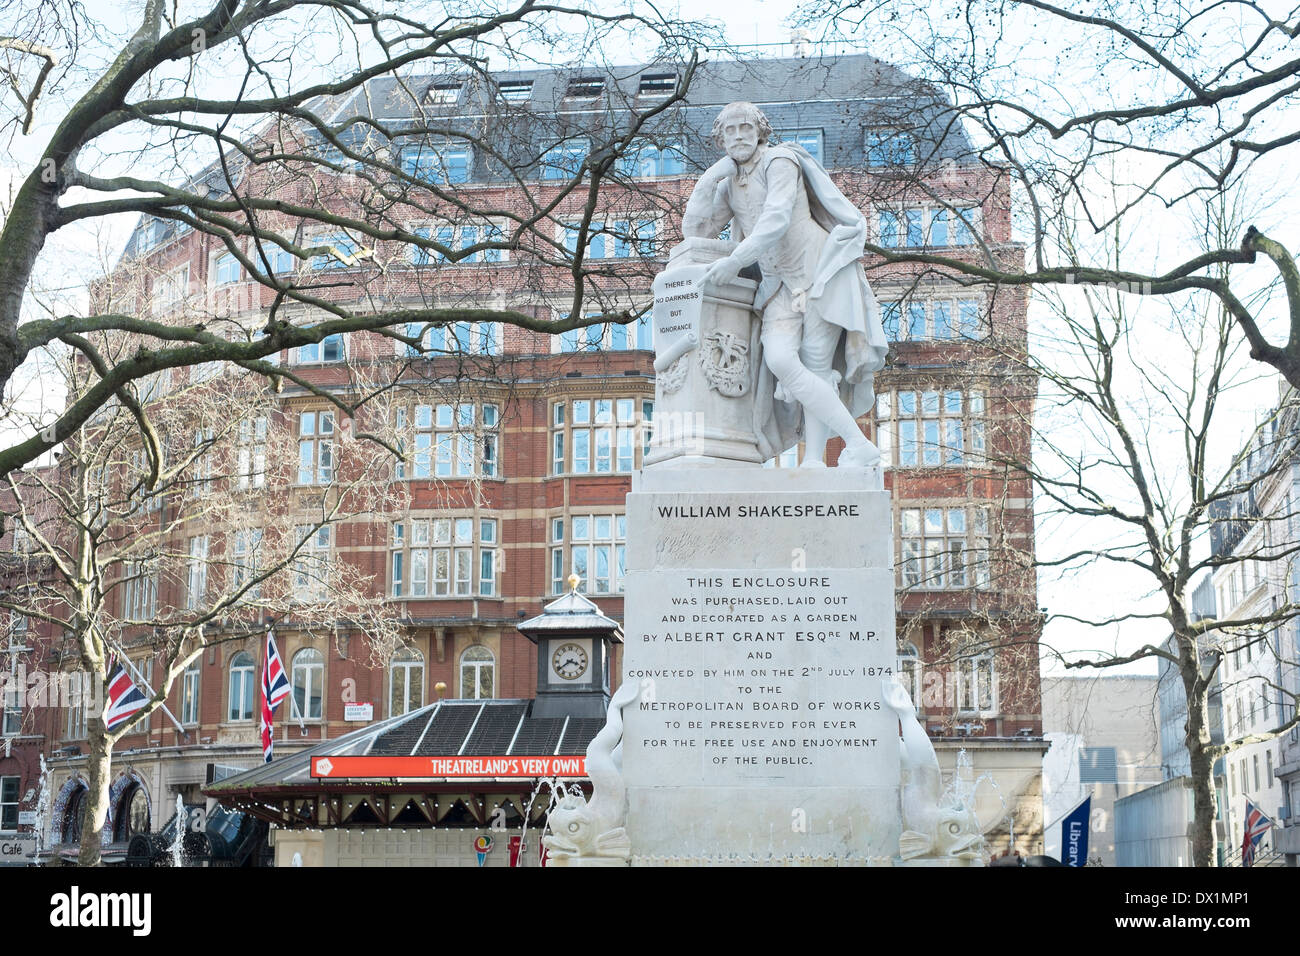 LONDON, UK - MARCH 14: Statue of William Shakespeare in water fountain in Leicester Square. March 01, 2014 in London. - Stock Image